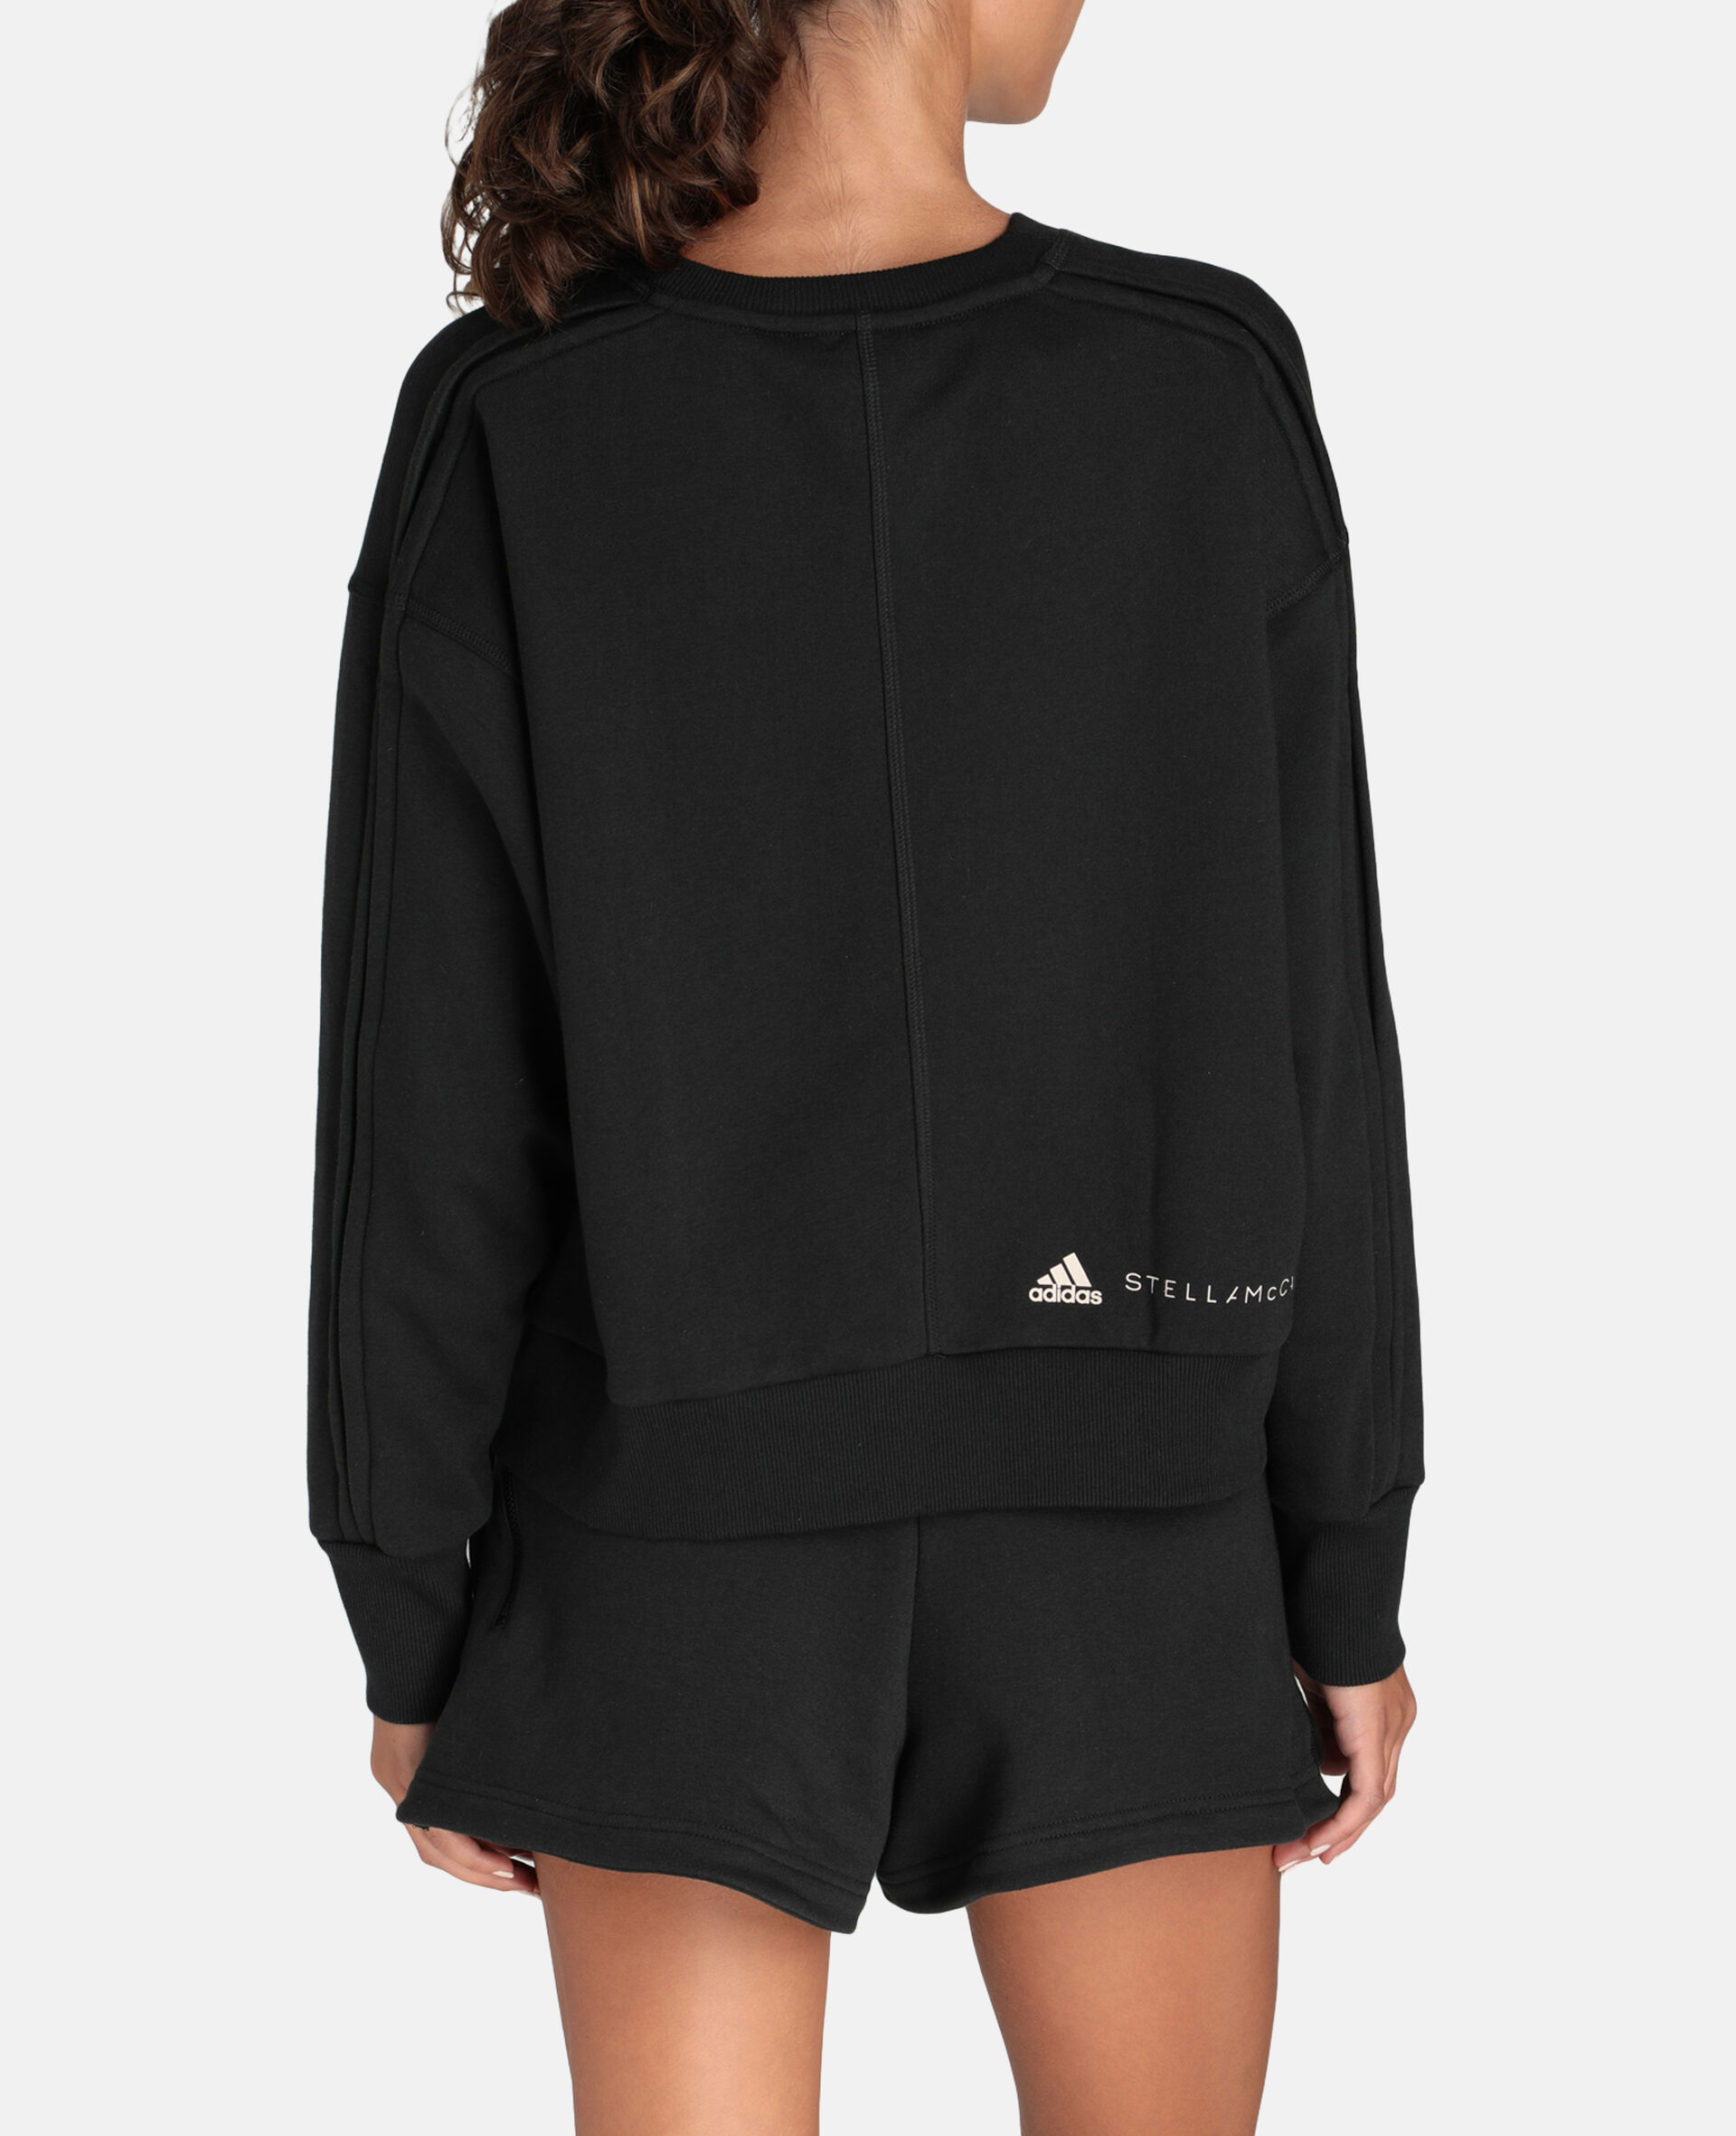 Black Training Sweatshirt-Black-large image number 2